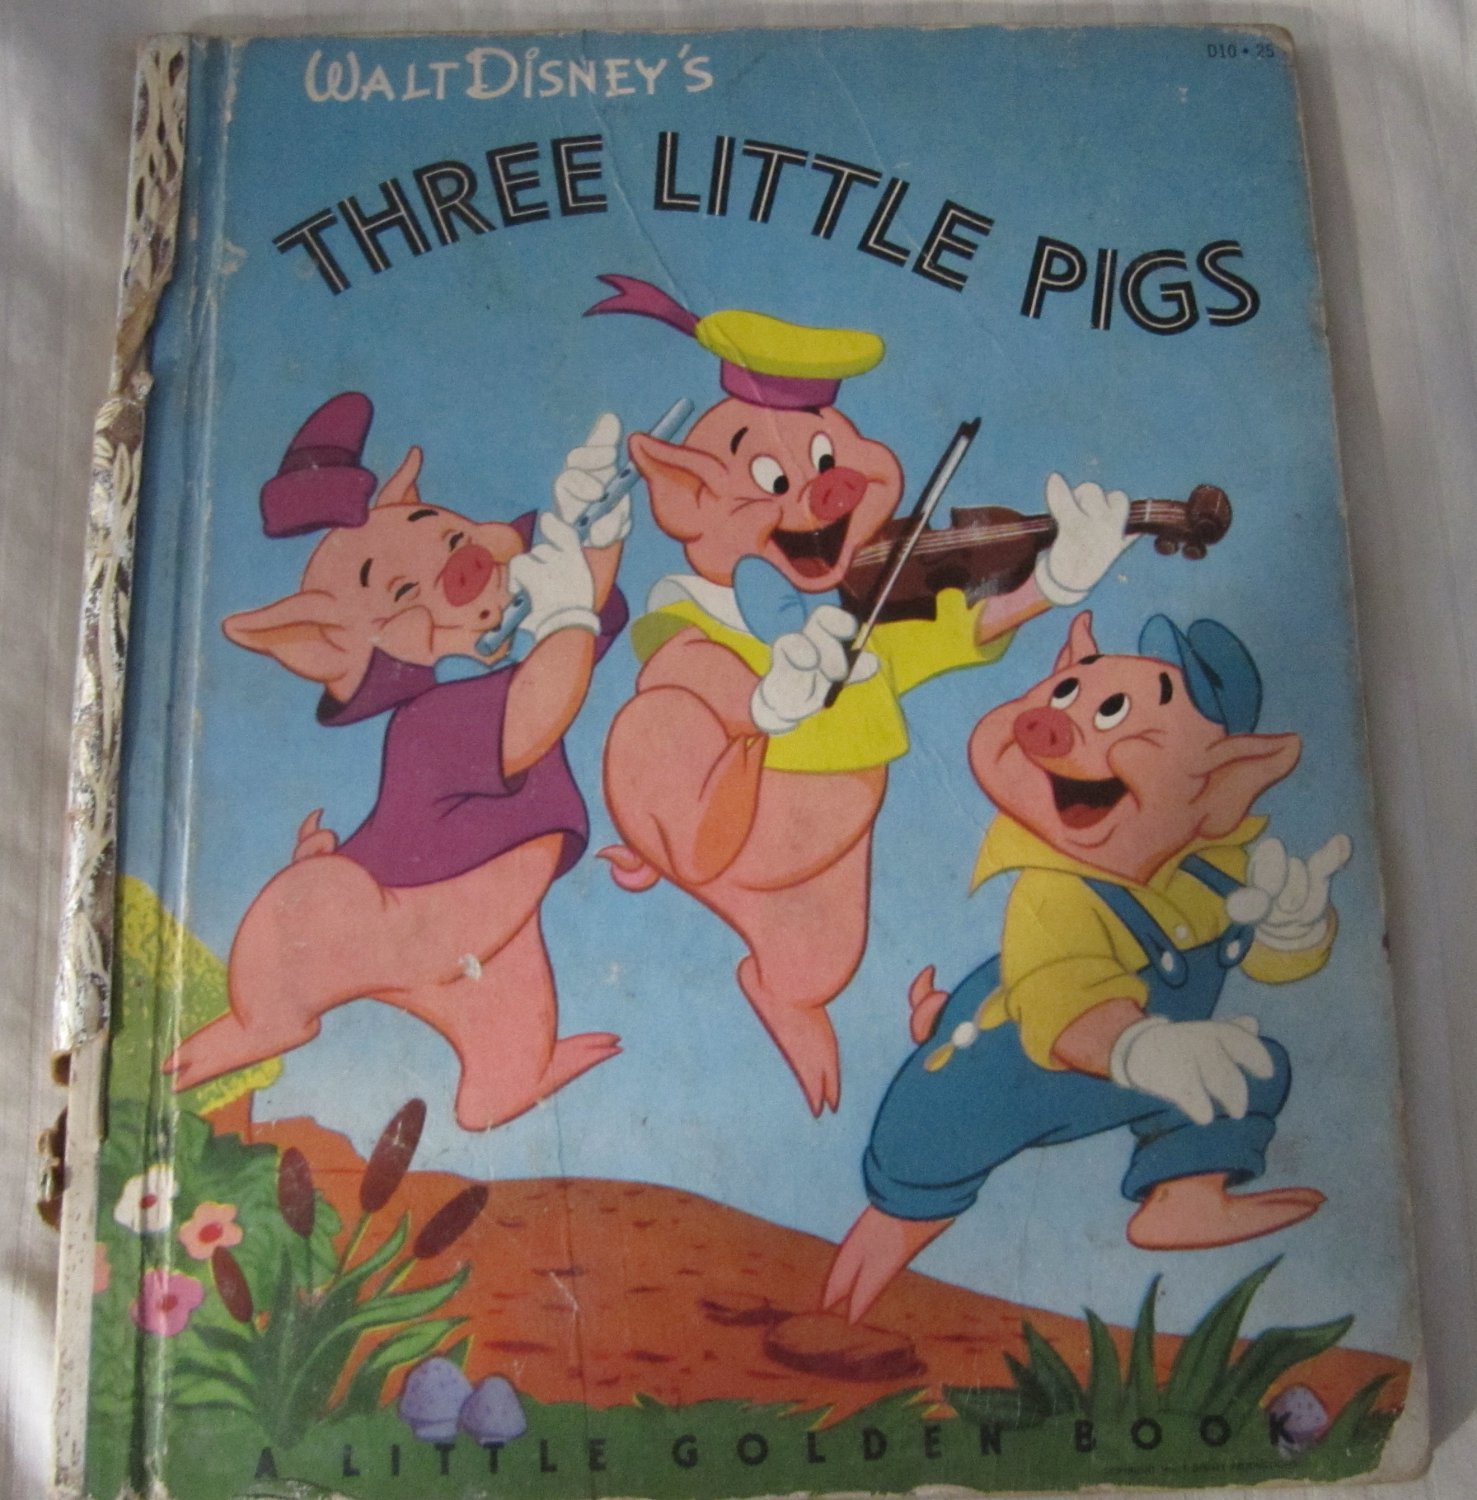 Walt Disney's Three Little Pigs Little Golden Book No. D10 - 25 (c) 1933, 1948